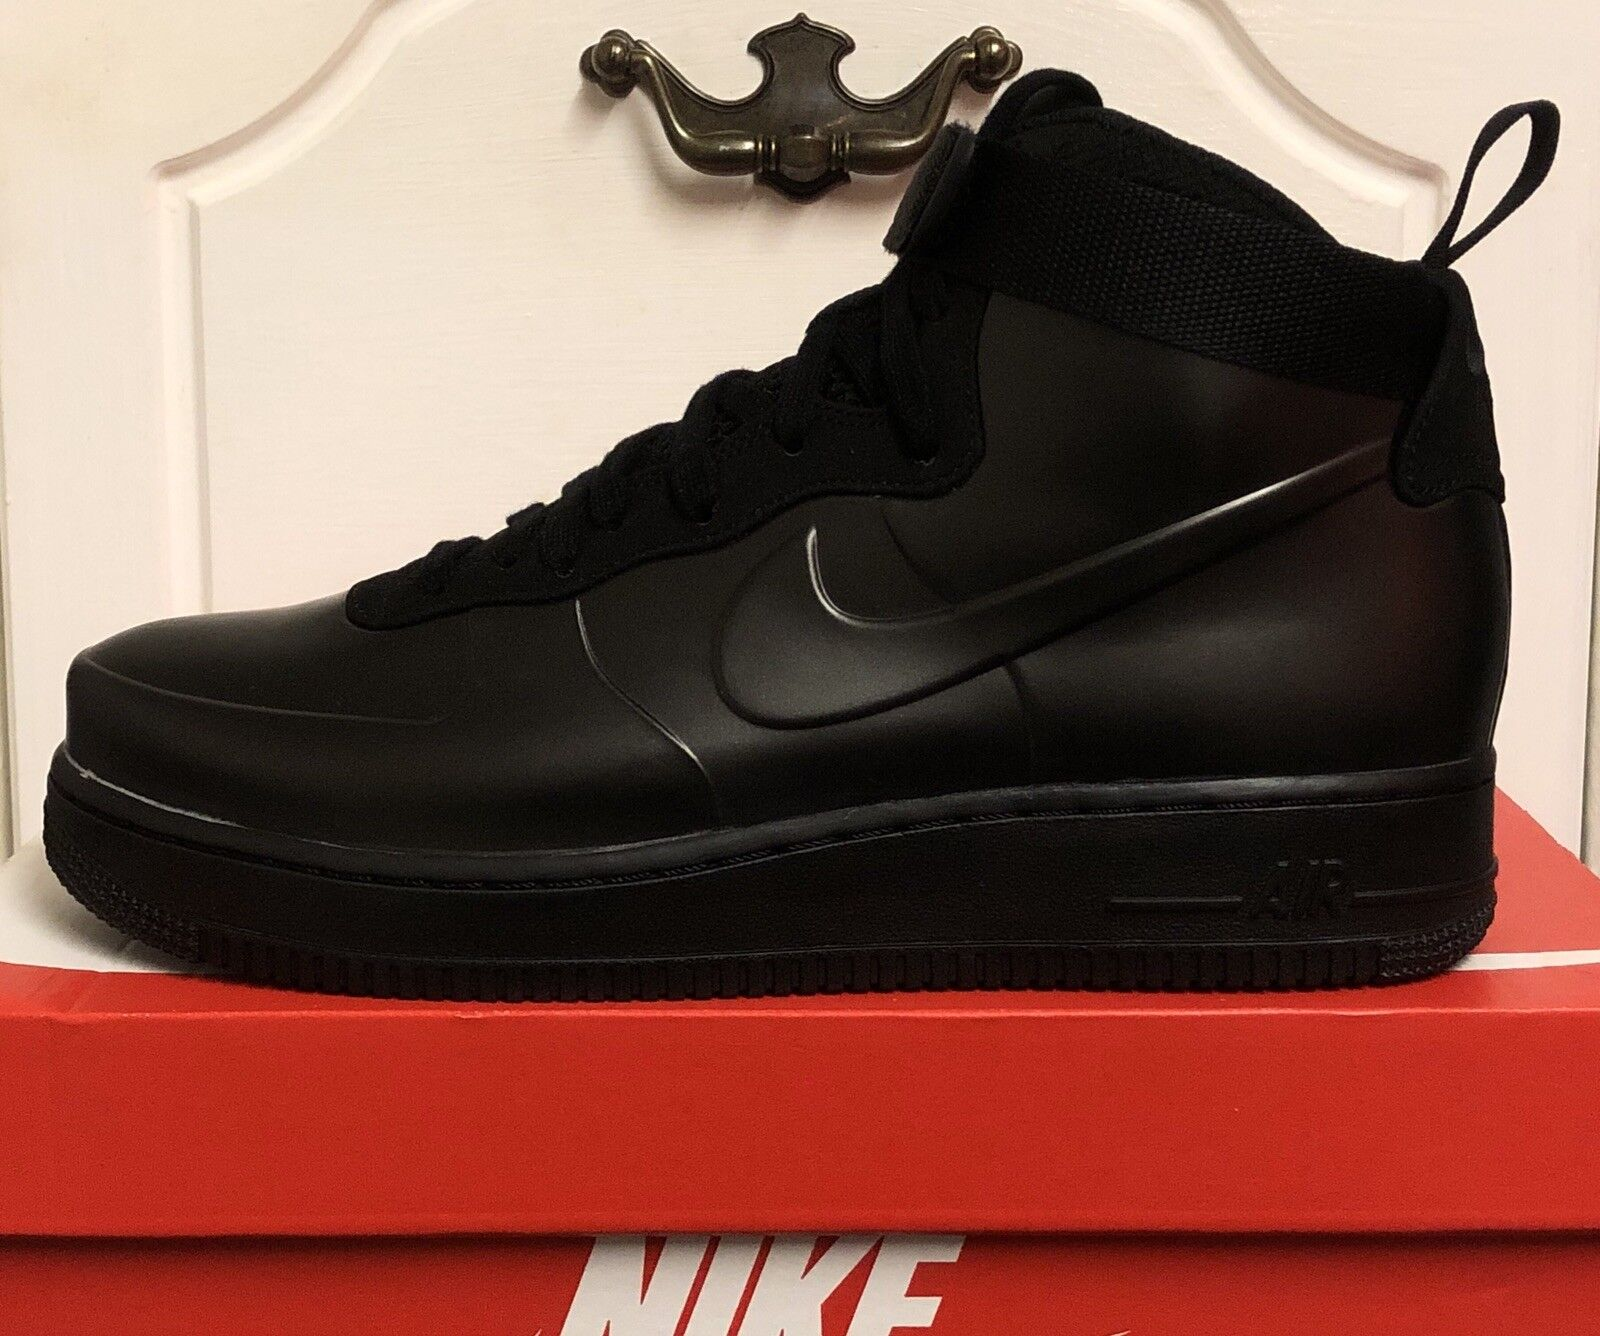 NIKE AIR FORCE 1 FOAMPOSITE FOAMPOSITE FOAMPOSITE CAPSULE TRAINERS SHOES SNEAKERS US 11 f7f66a